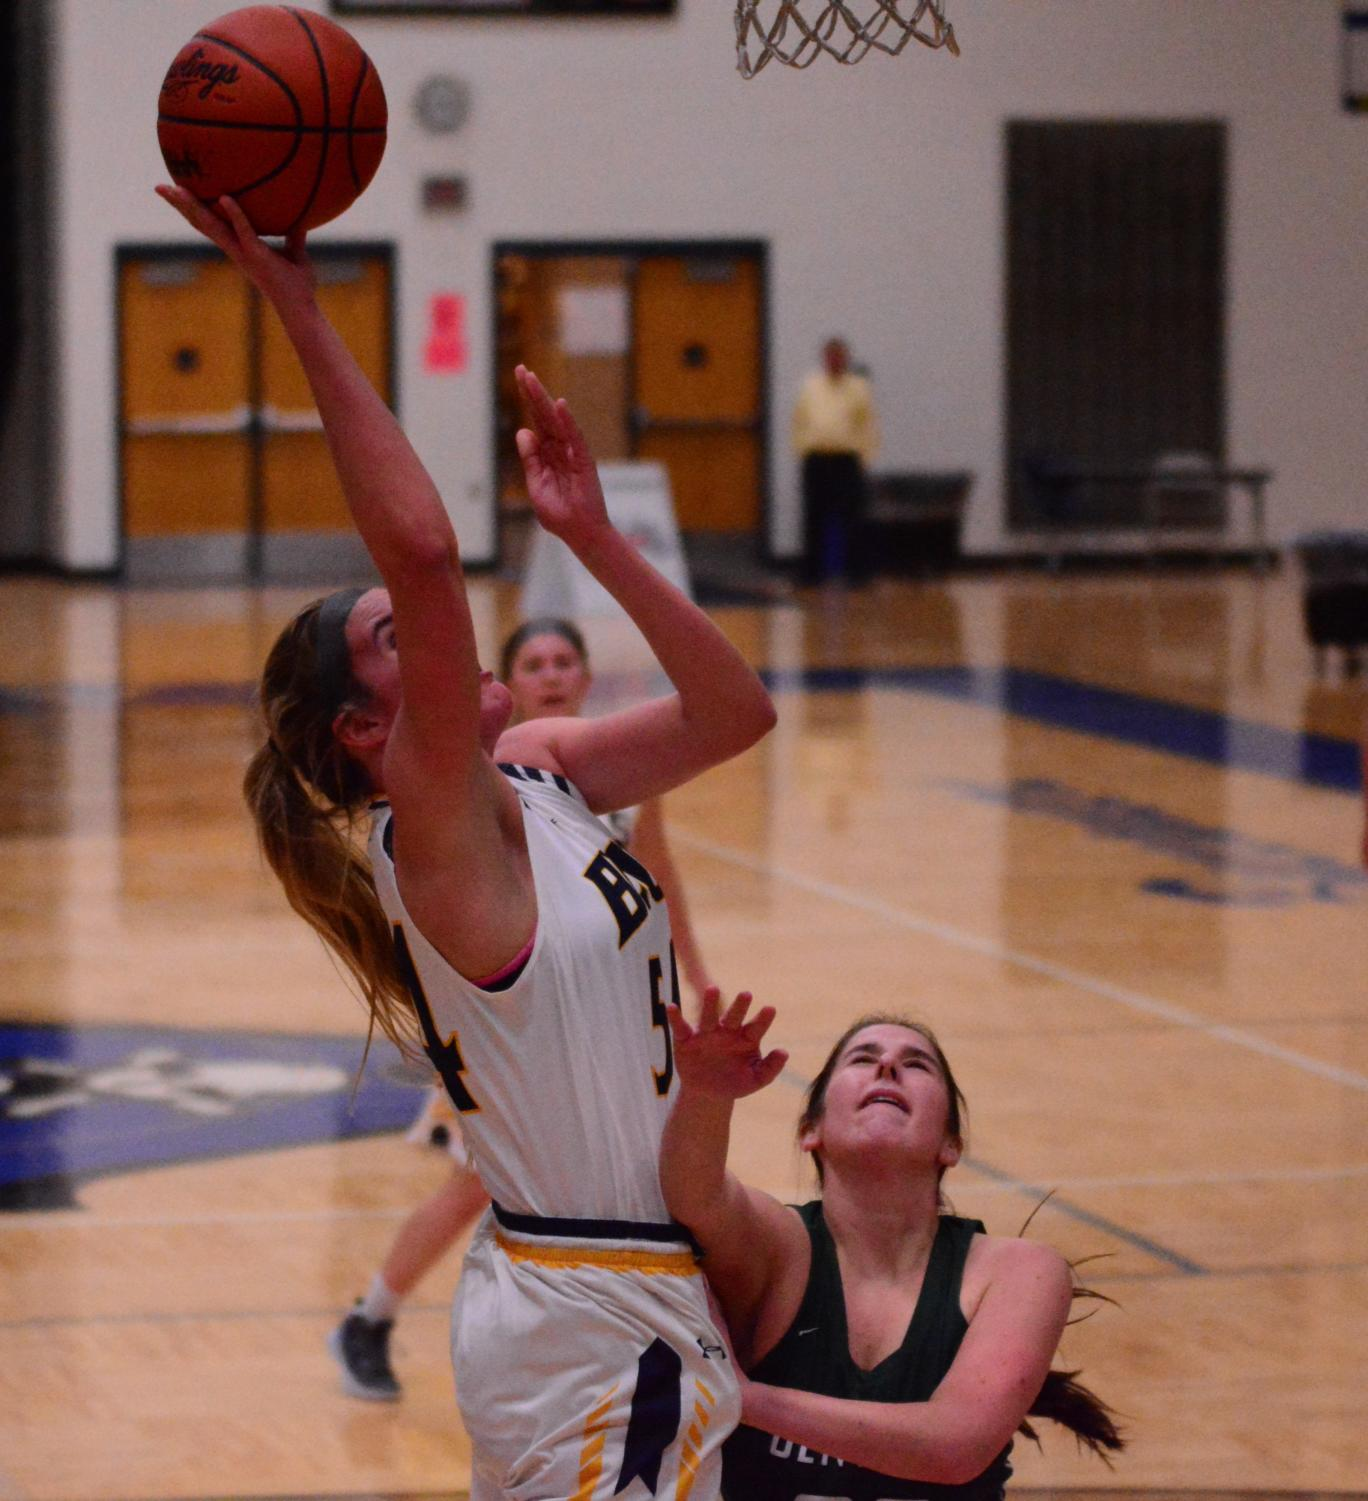 Junior Olivia McMullen goes up for a key put-back in a clash against Forest Hills Central. She will look to own the boards against the Rams tomorrow.